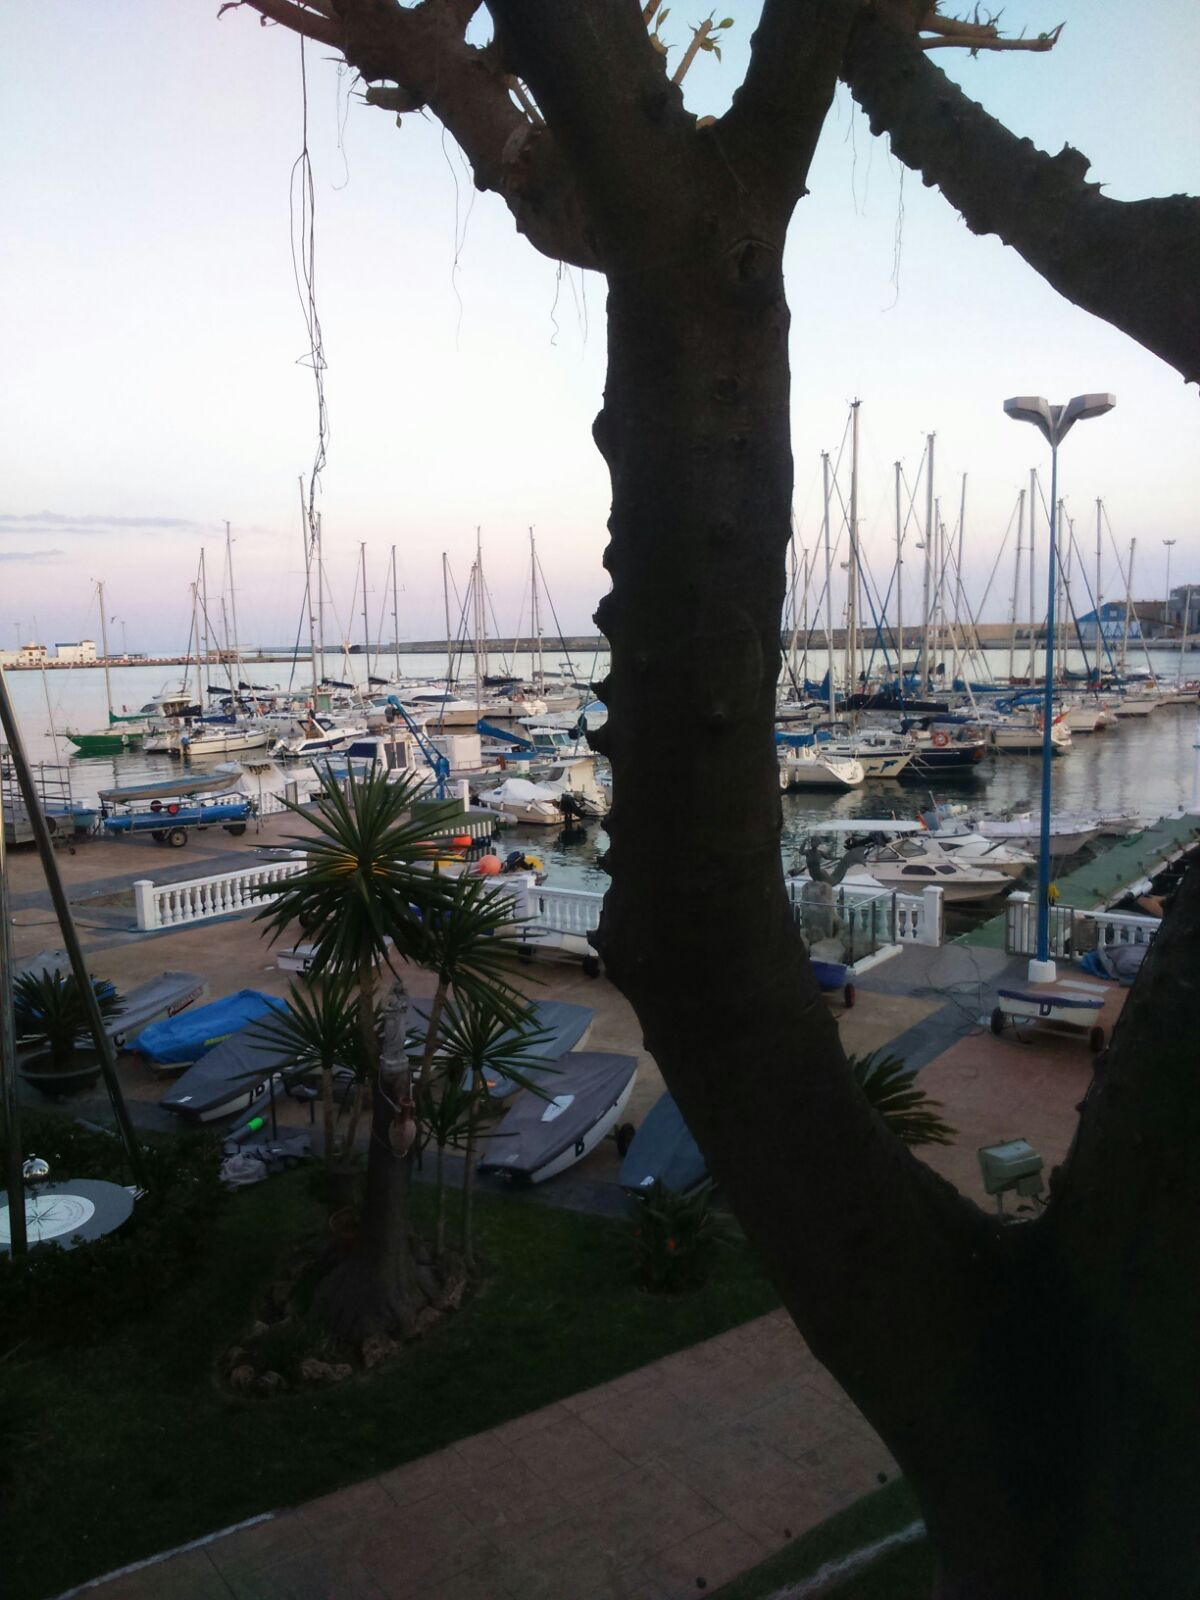 The port of Motril